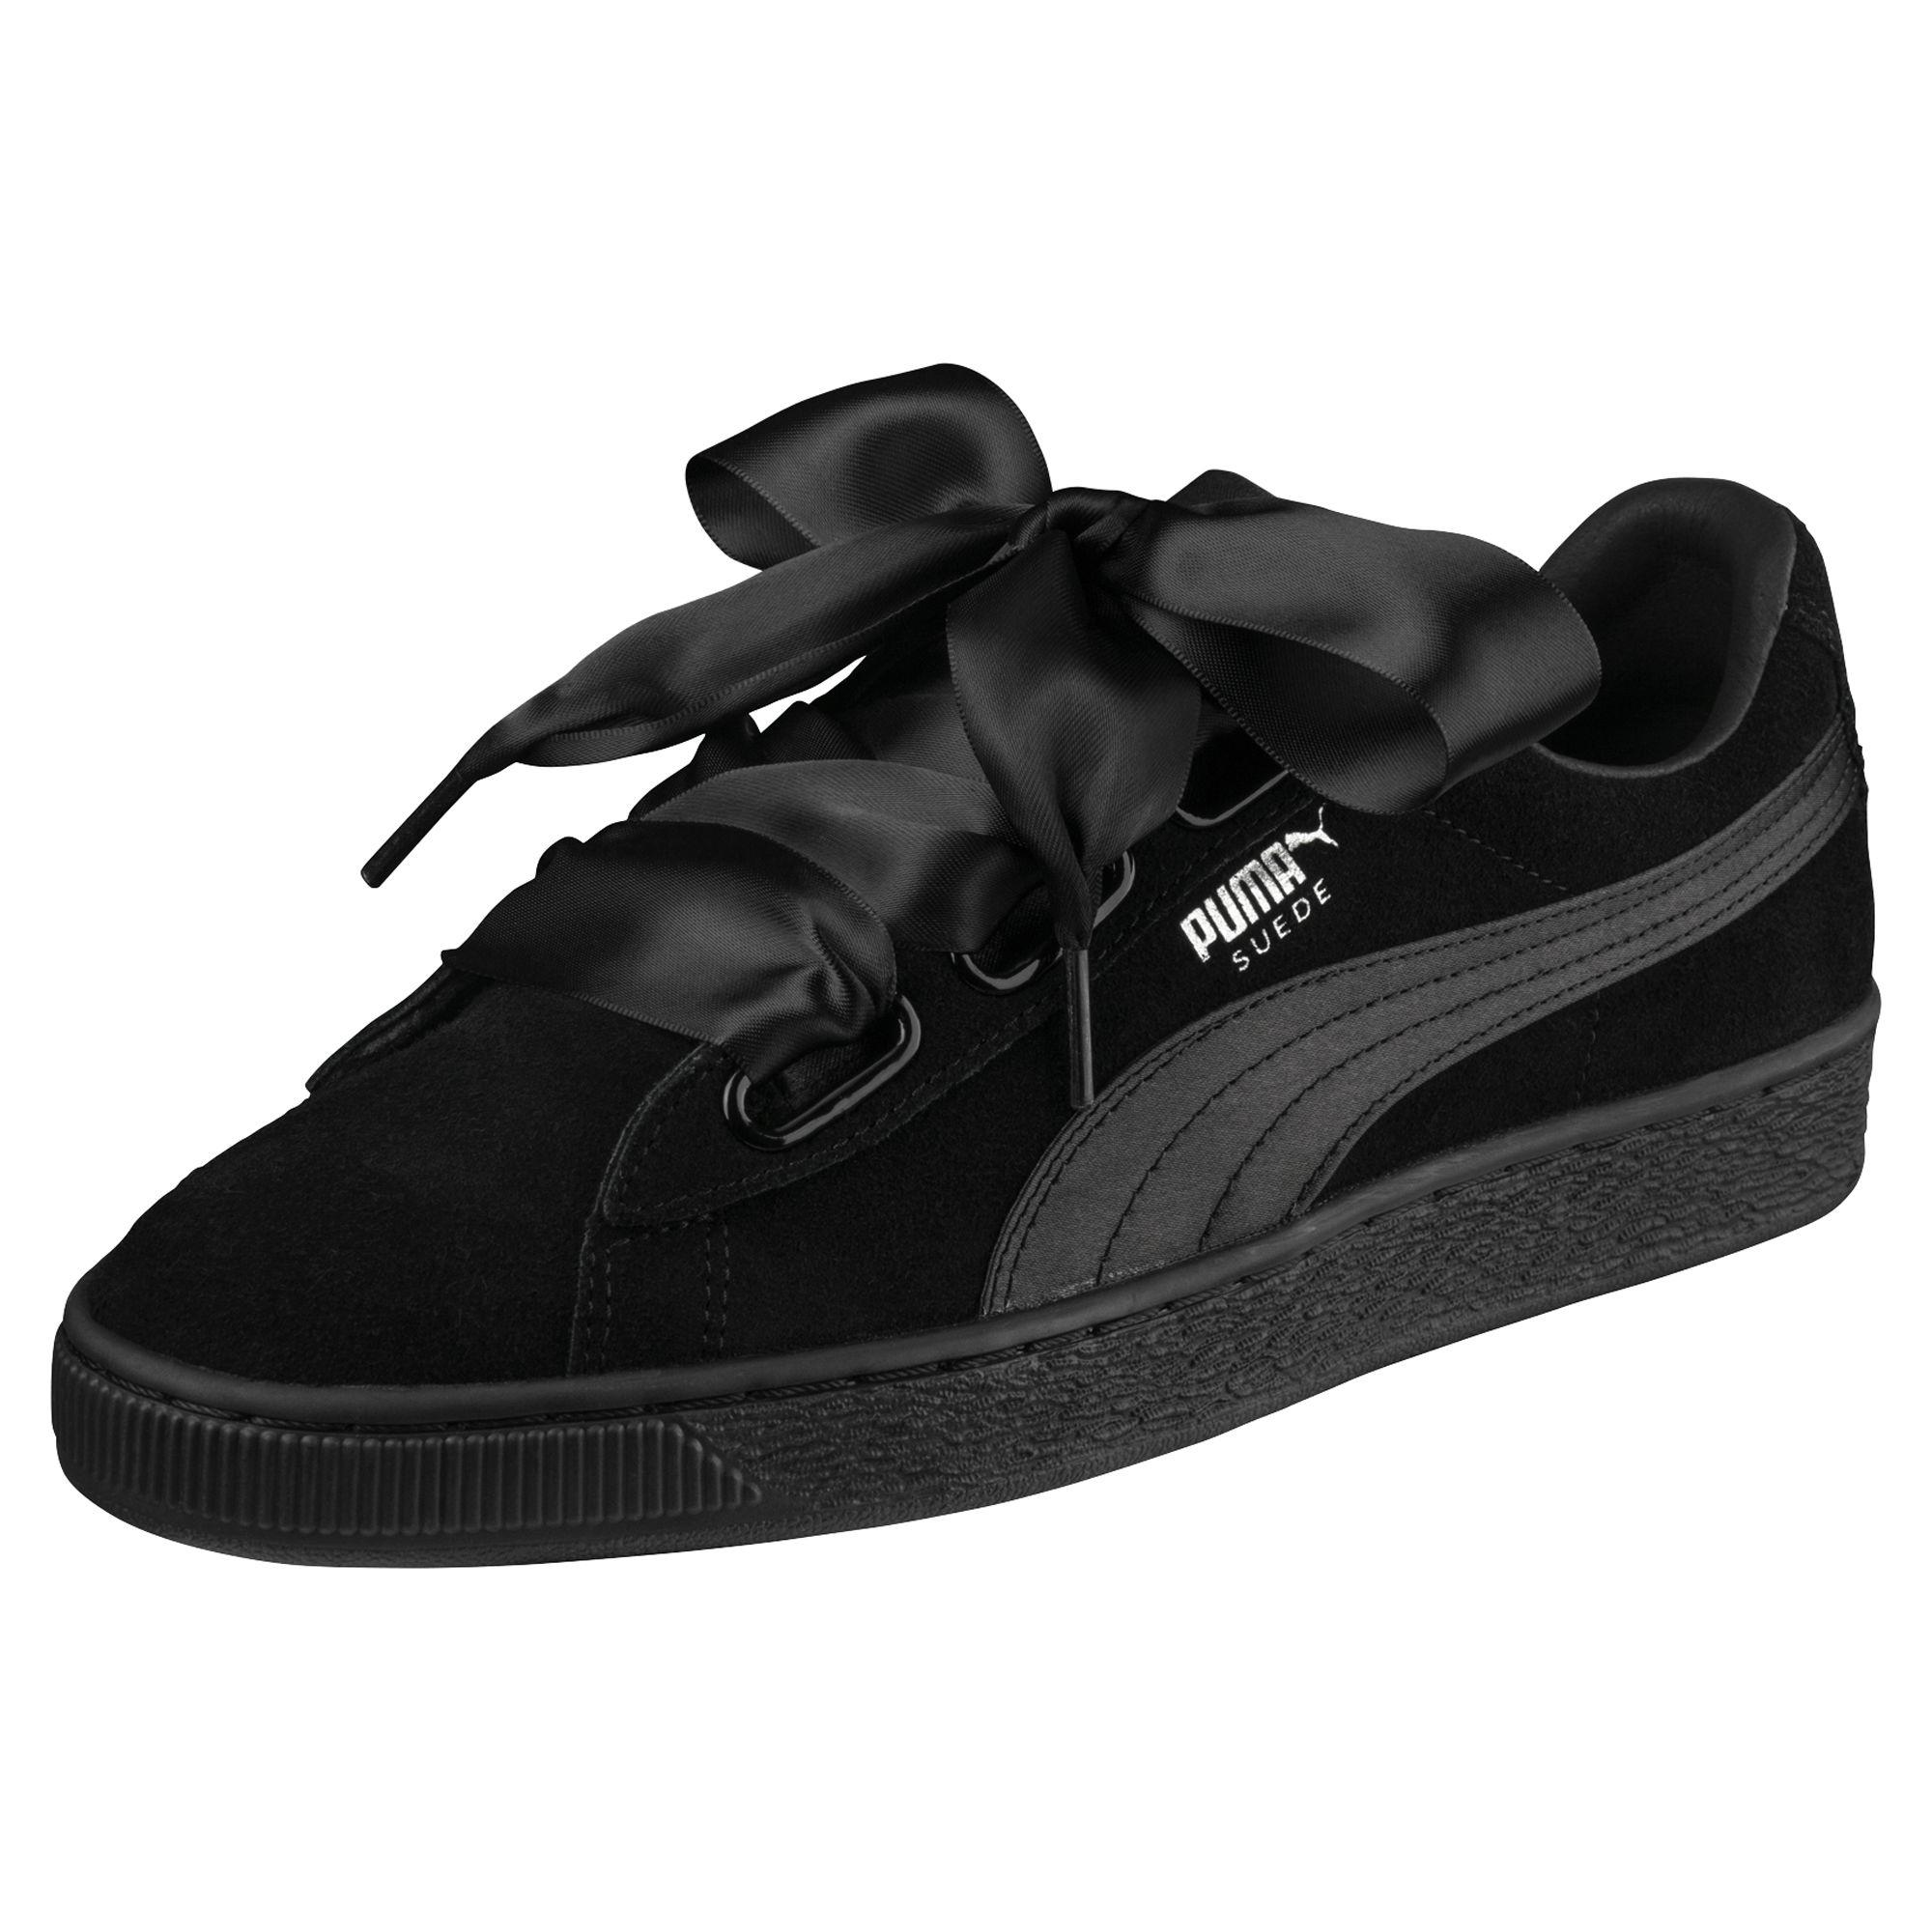 care of by puma donna scarpe